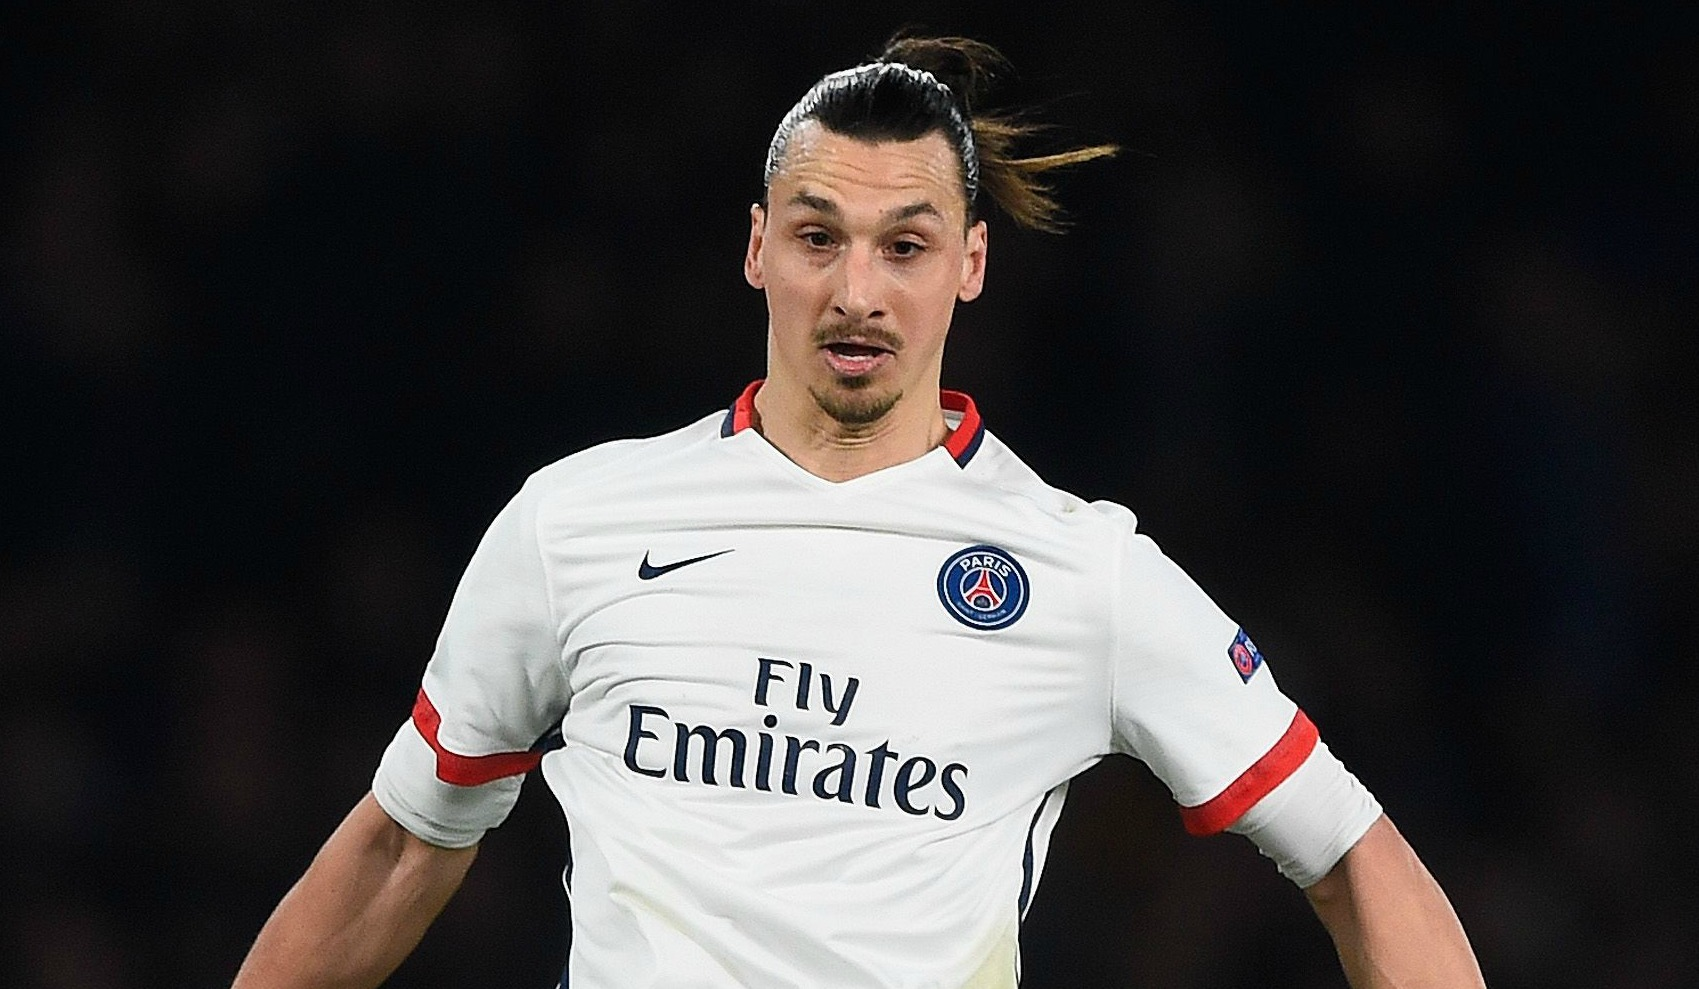 Rumour: Manchester United could seal Zlatan Ibrahimovic transfer if Laurent Blanc becomes manager